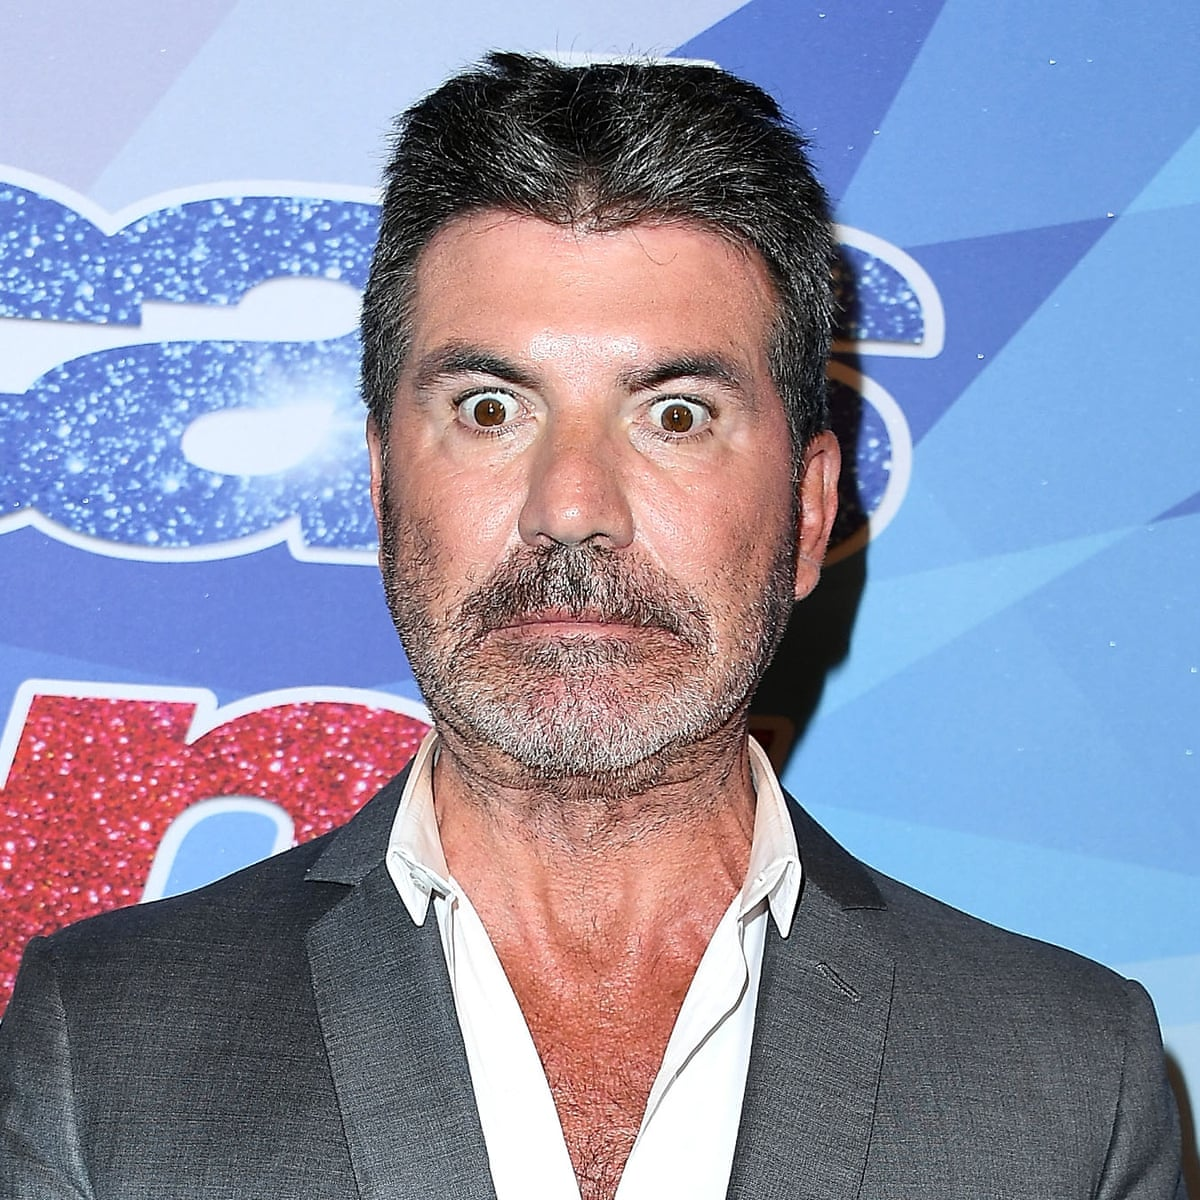 Simon Cowell giving up his phone is the ultimate show of affluence | Arwa  Mahdawi